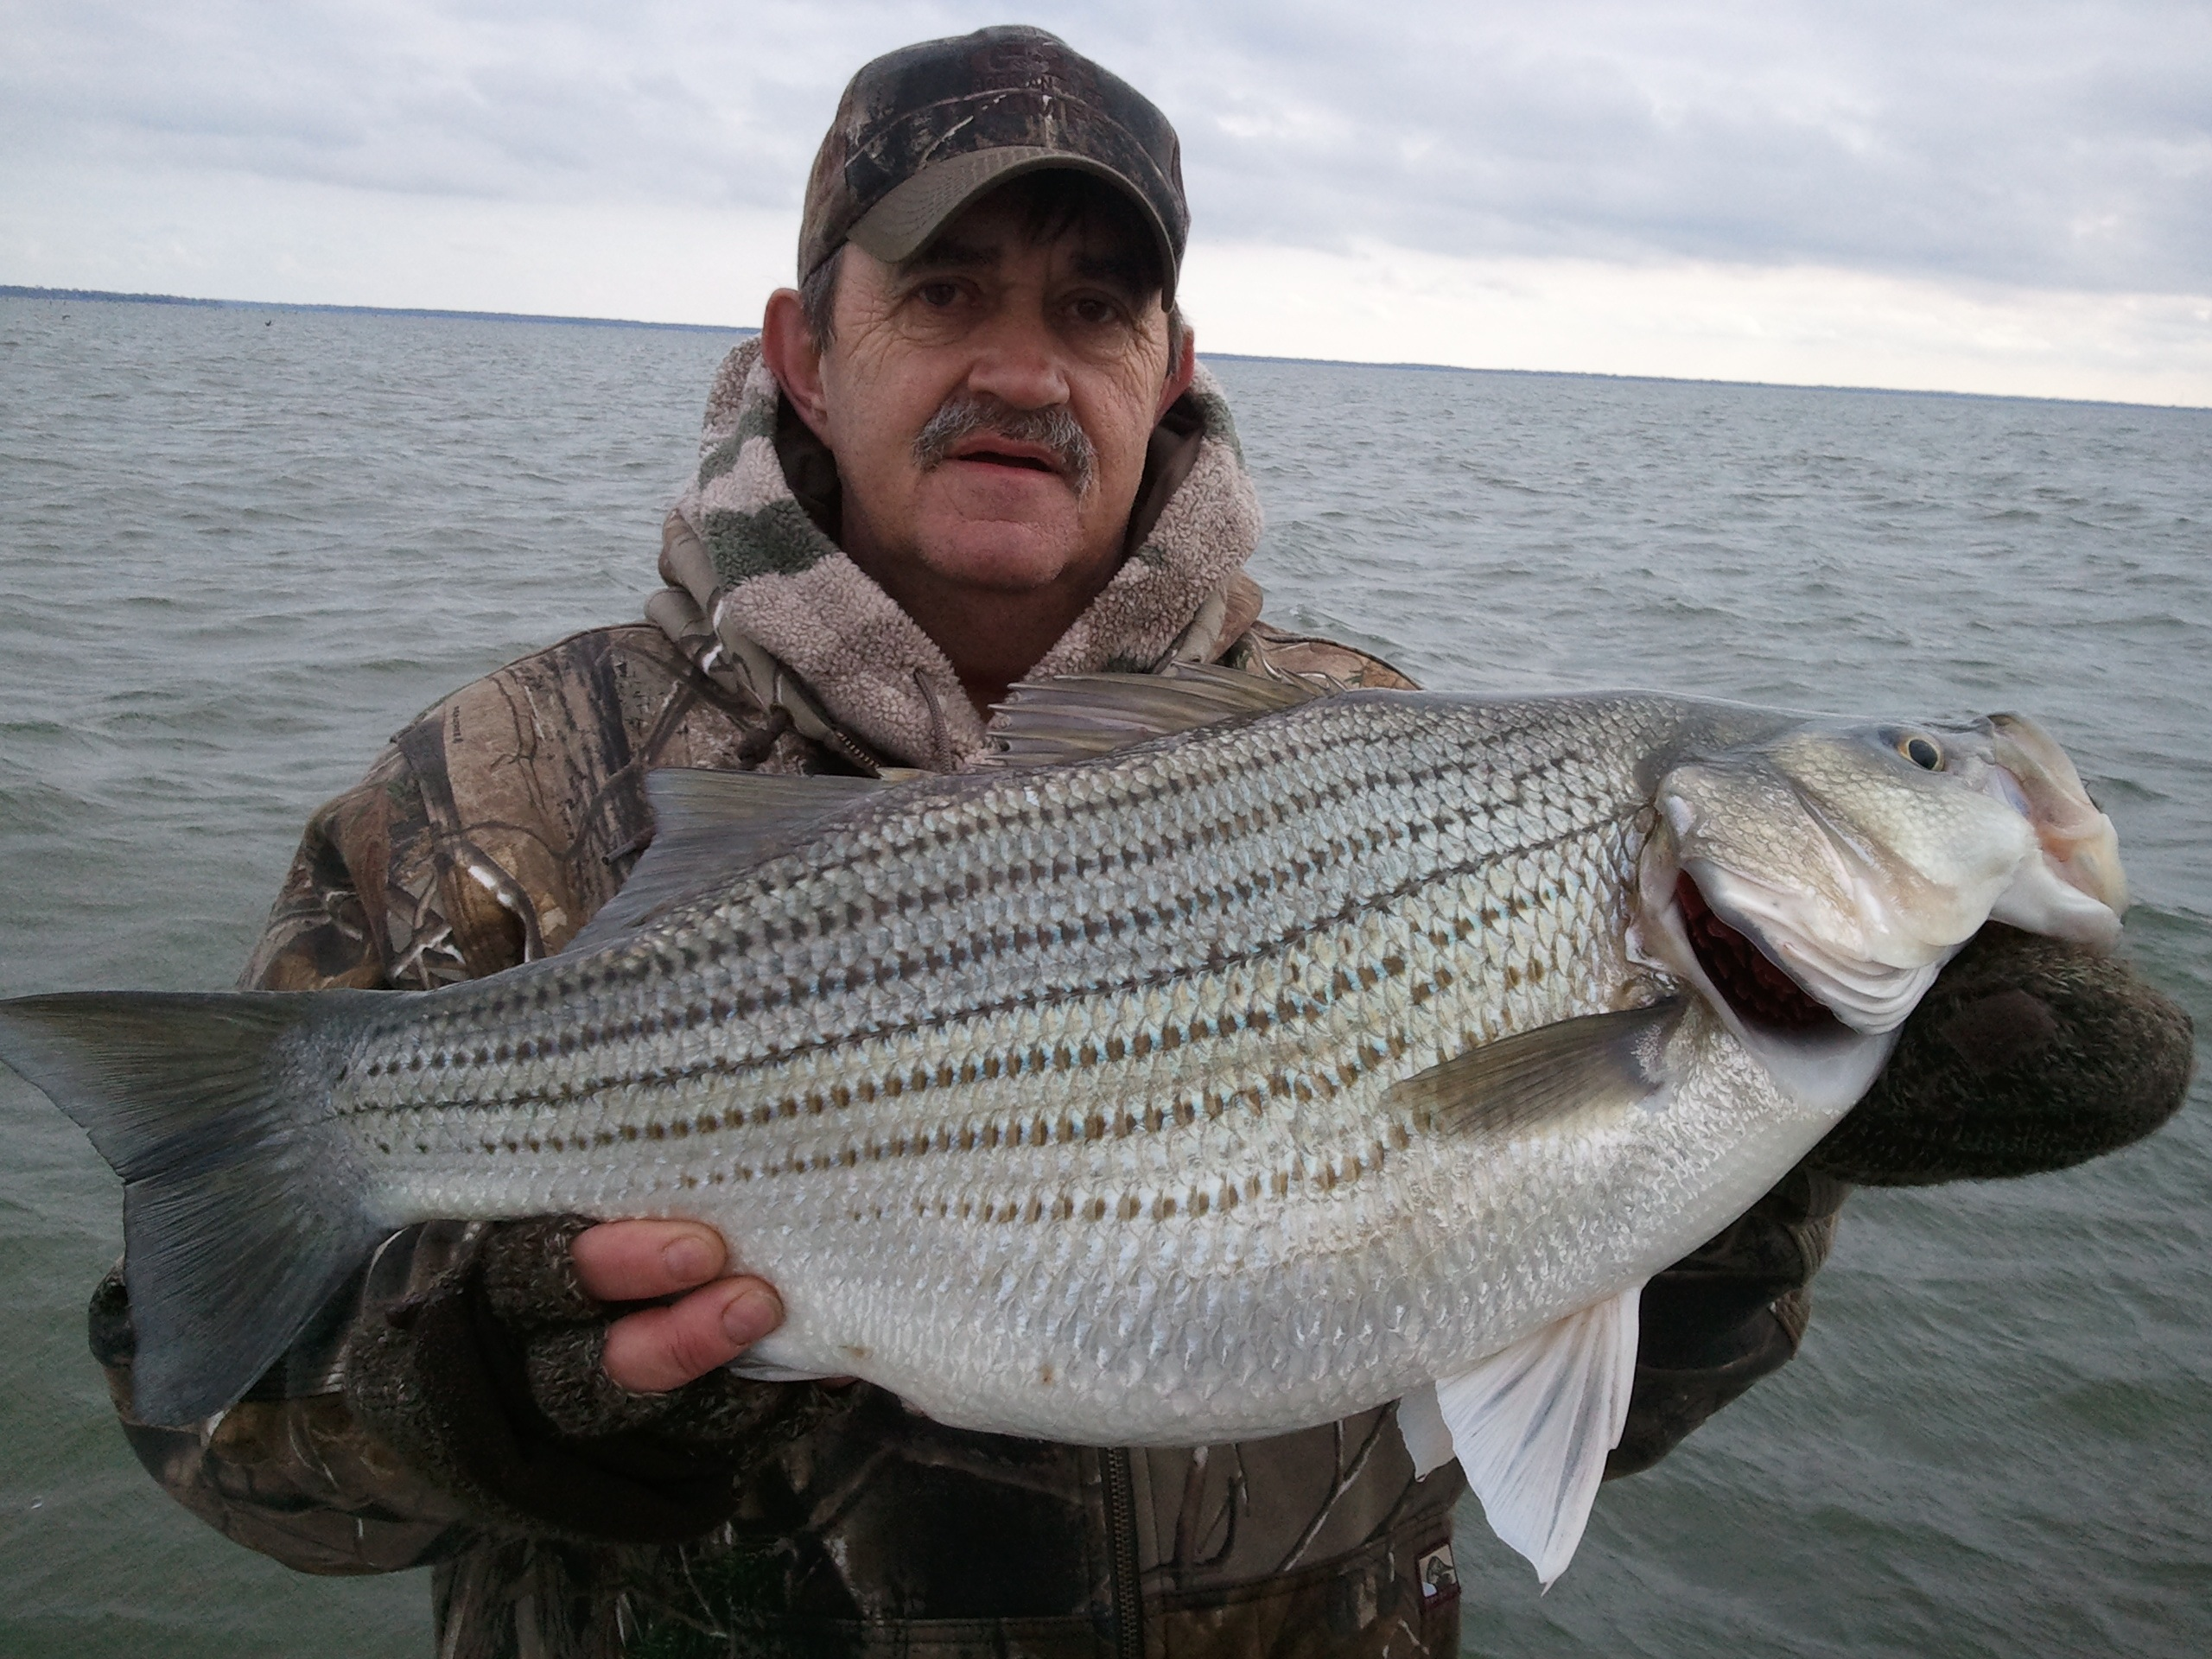 Lake tawakoni fishing guide home striper fishing for Lake tawakoni fishing guides